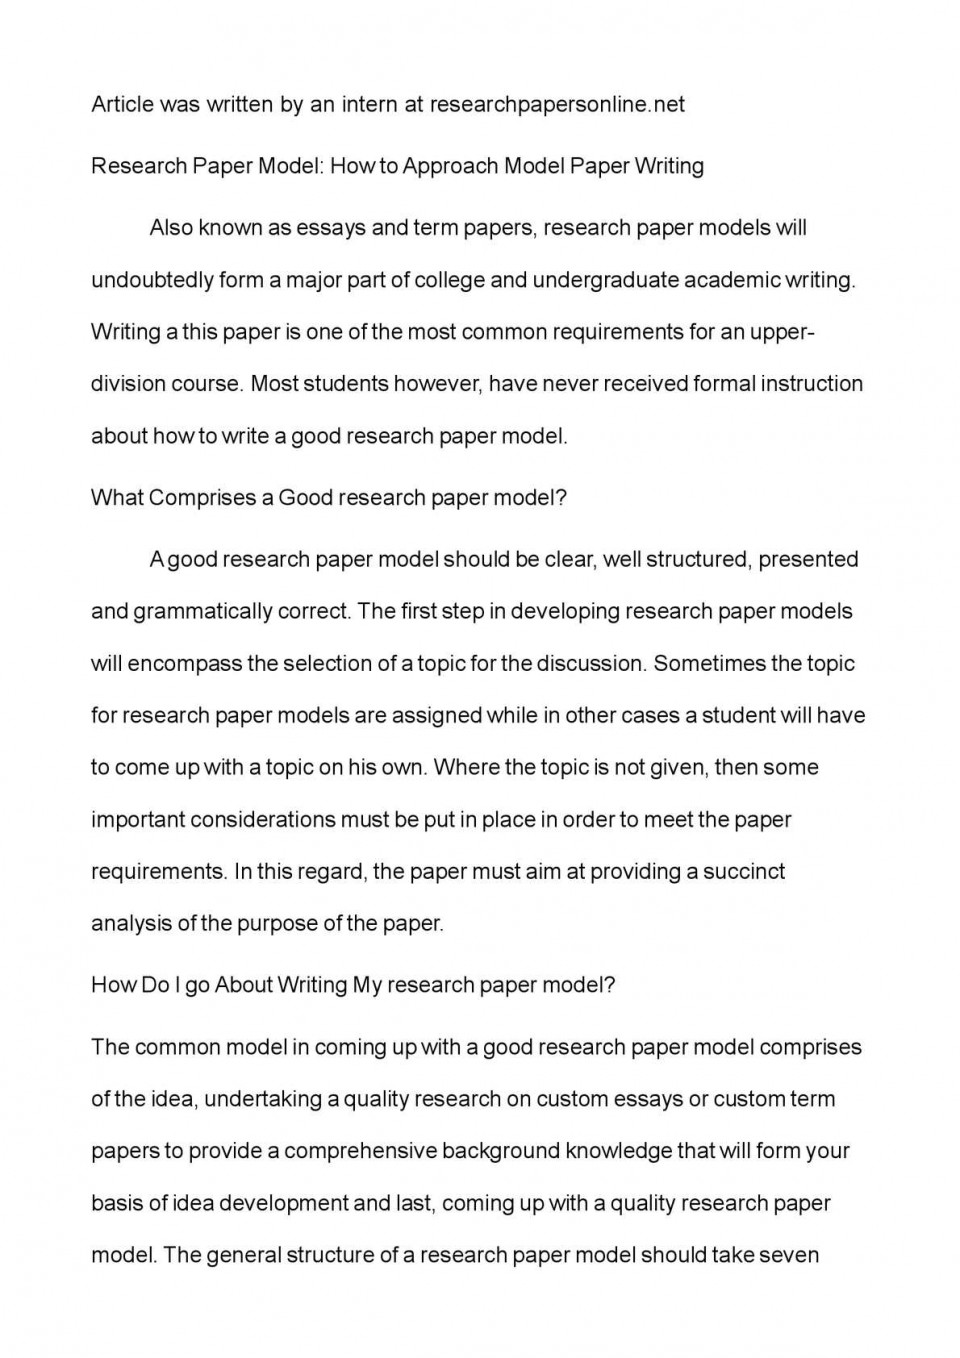 012 Research Paper P1 Correct Order Of Wonderful A Sequence Steps For Writing 960